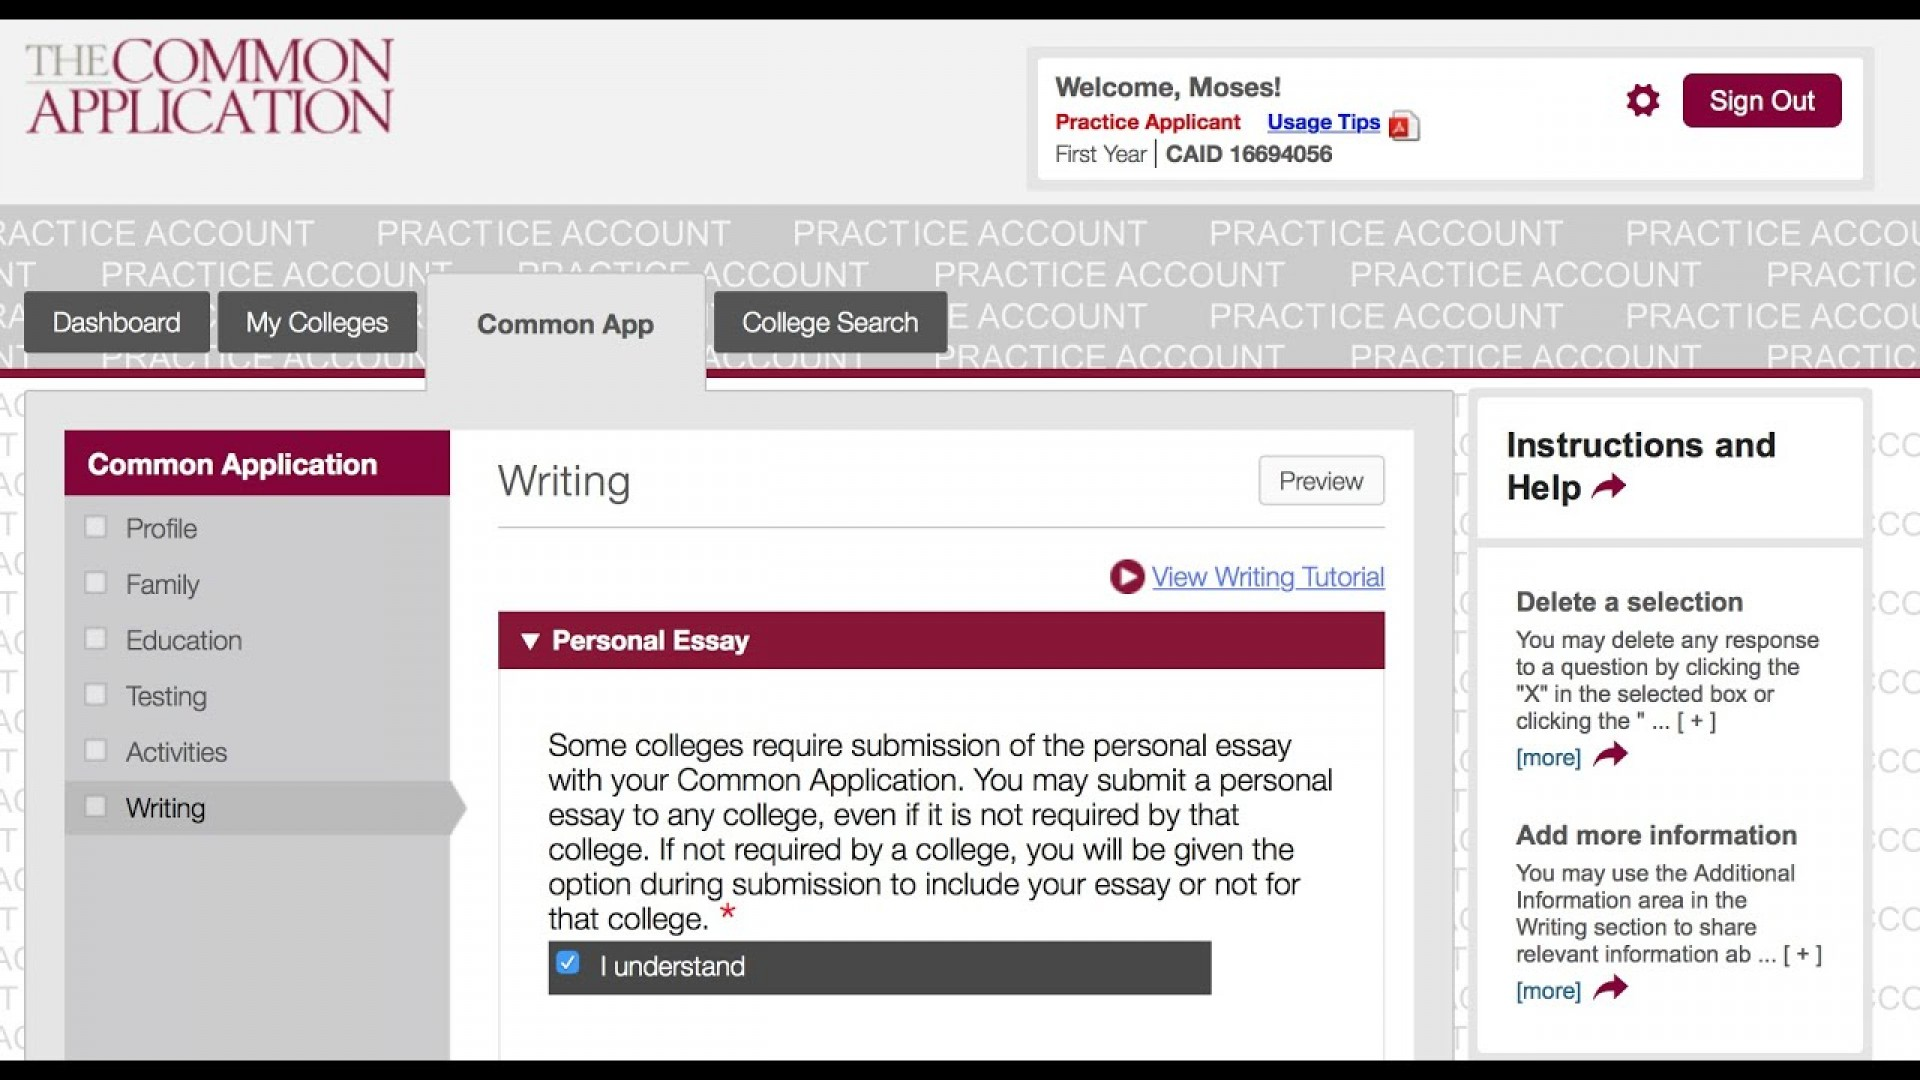 003 Common App Personal Essay Maxresdefault Breathtaking Format Tips 1920